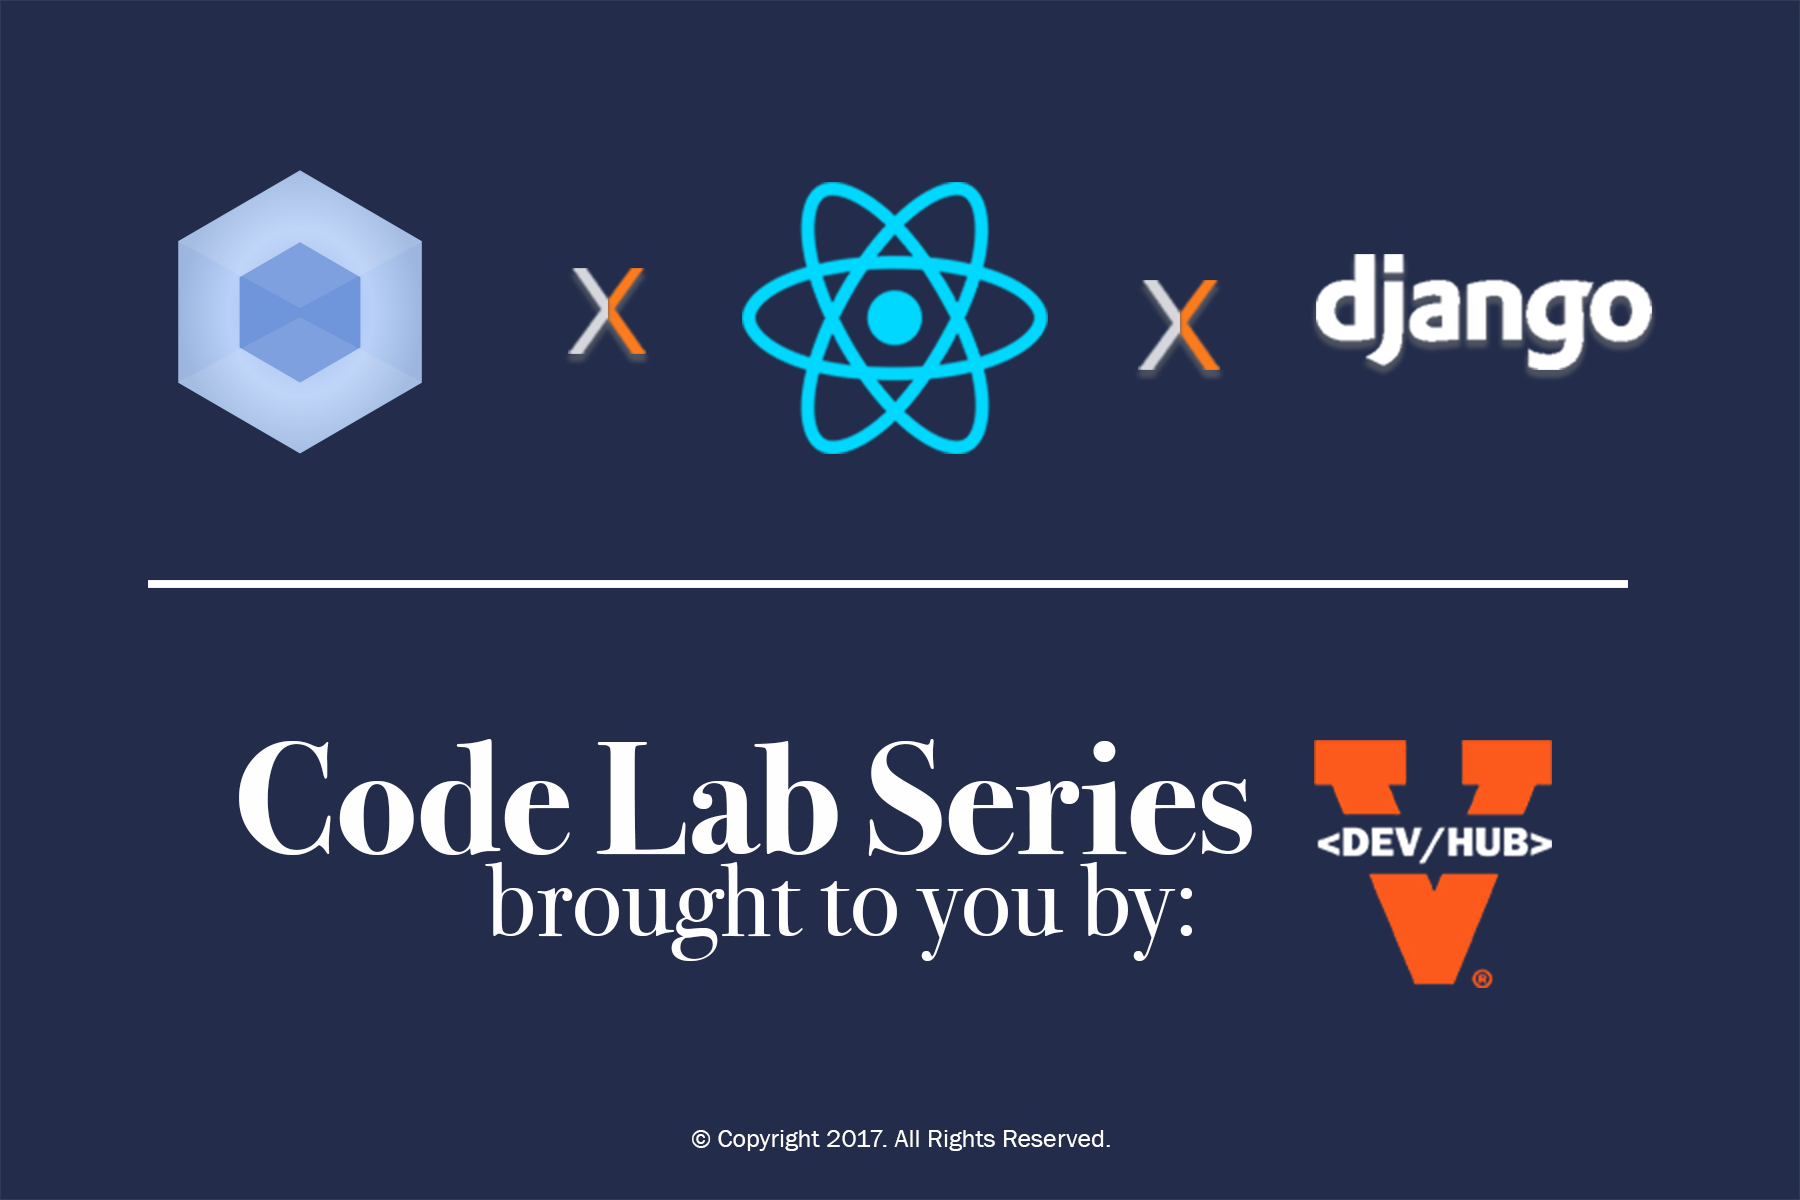 Set up React in your Django Project with webpack - UVA